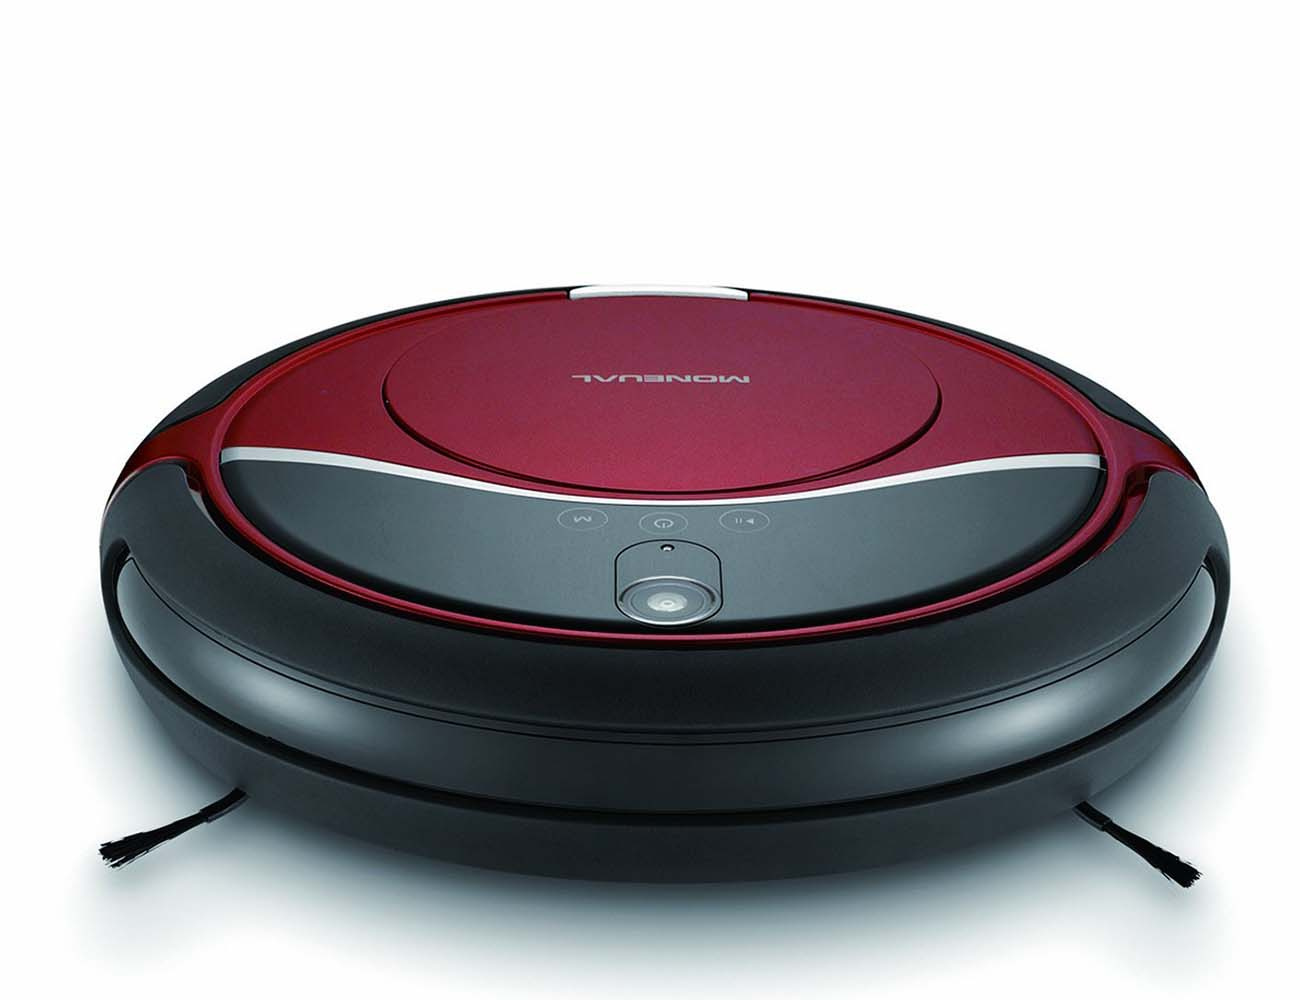 Rydis Pro Robovacmop Hybrid Robot Vacuum Cleaner By